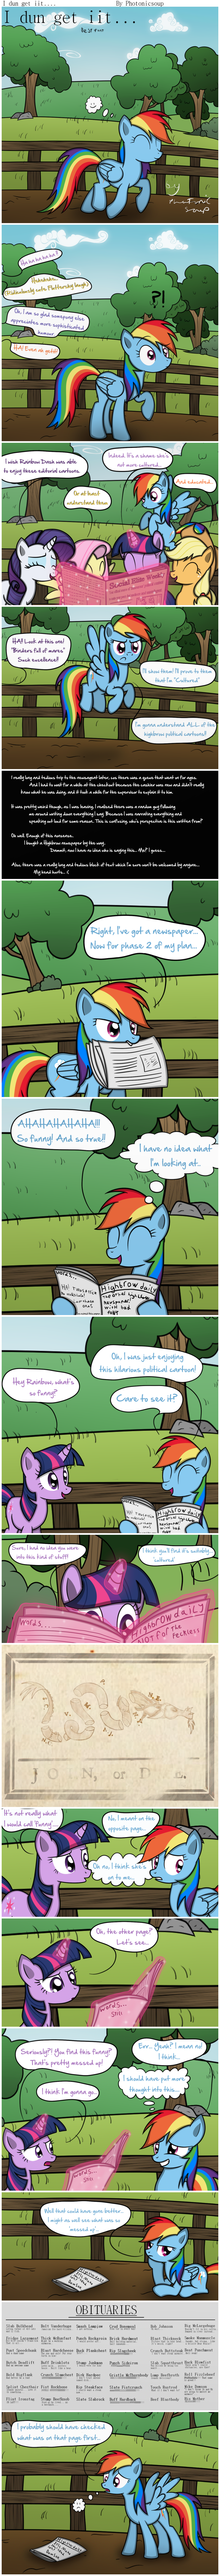 Comic: I dun get iit... by Photonicsoup